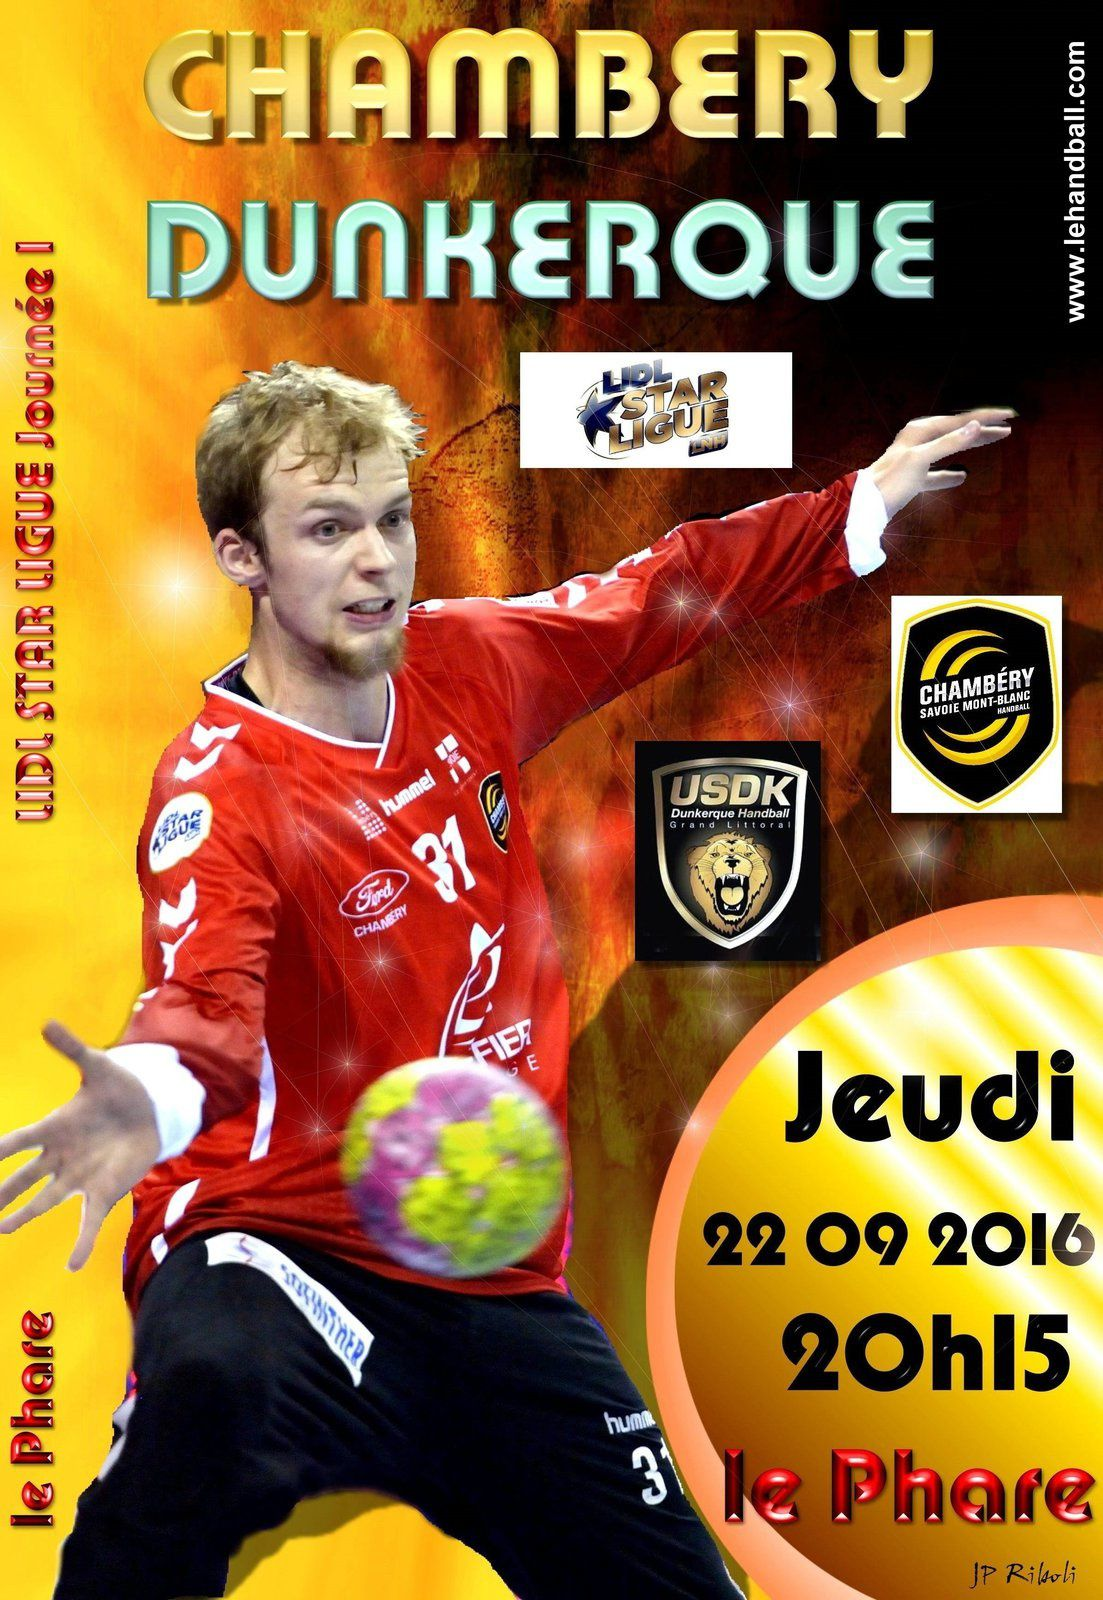 D1 CHAMBERY - DUNKERQUE jeudi 22 septembre 2016